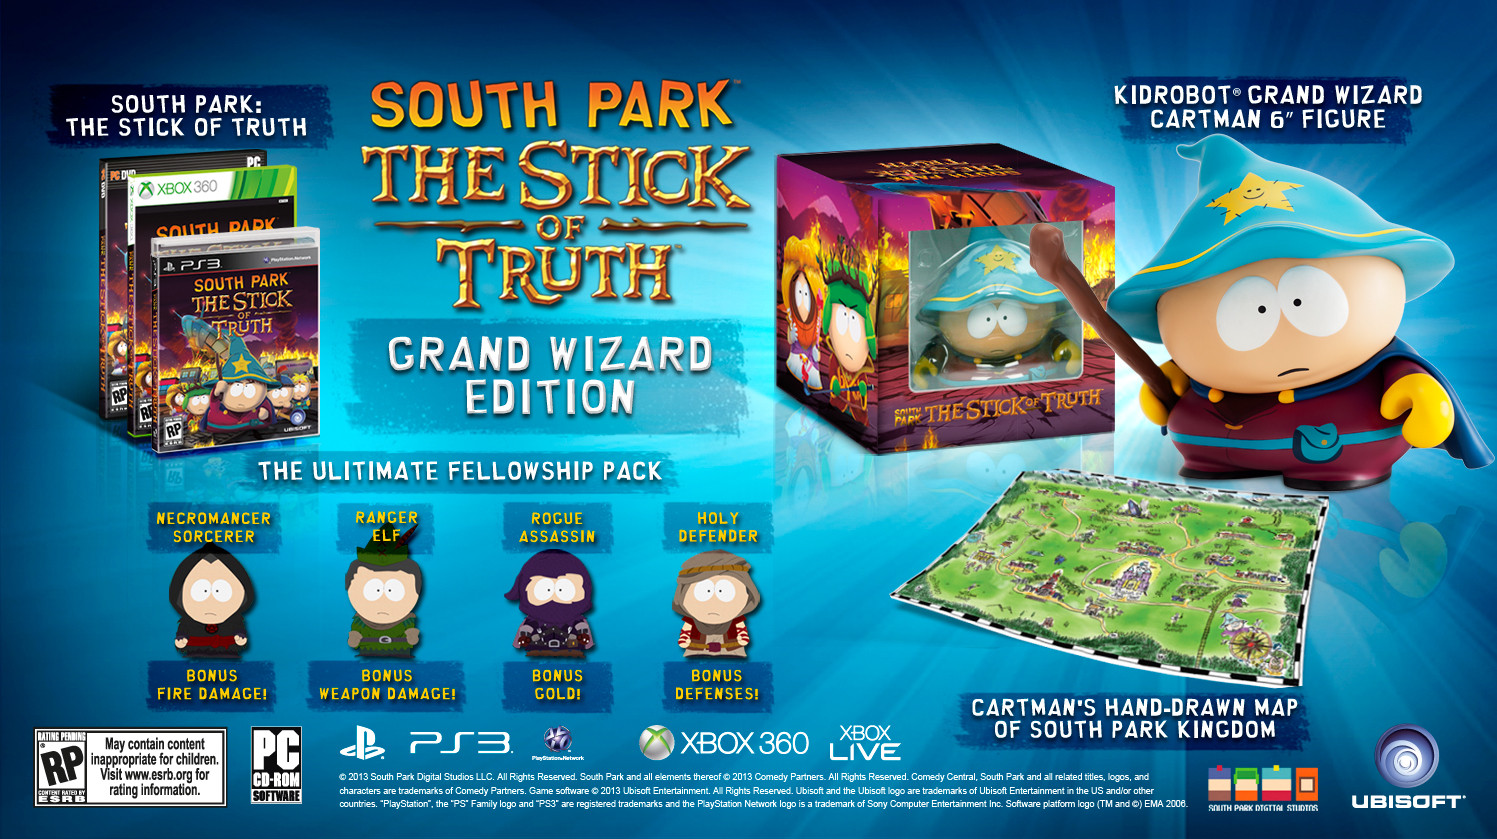 Programa 7x22 'South Park: La Vara de la Verdad South-Park-Stick-of-Truth-Grand-Wizard-Ed